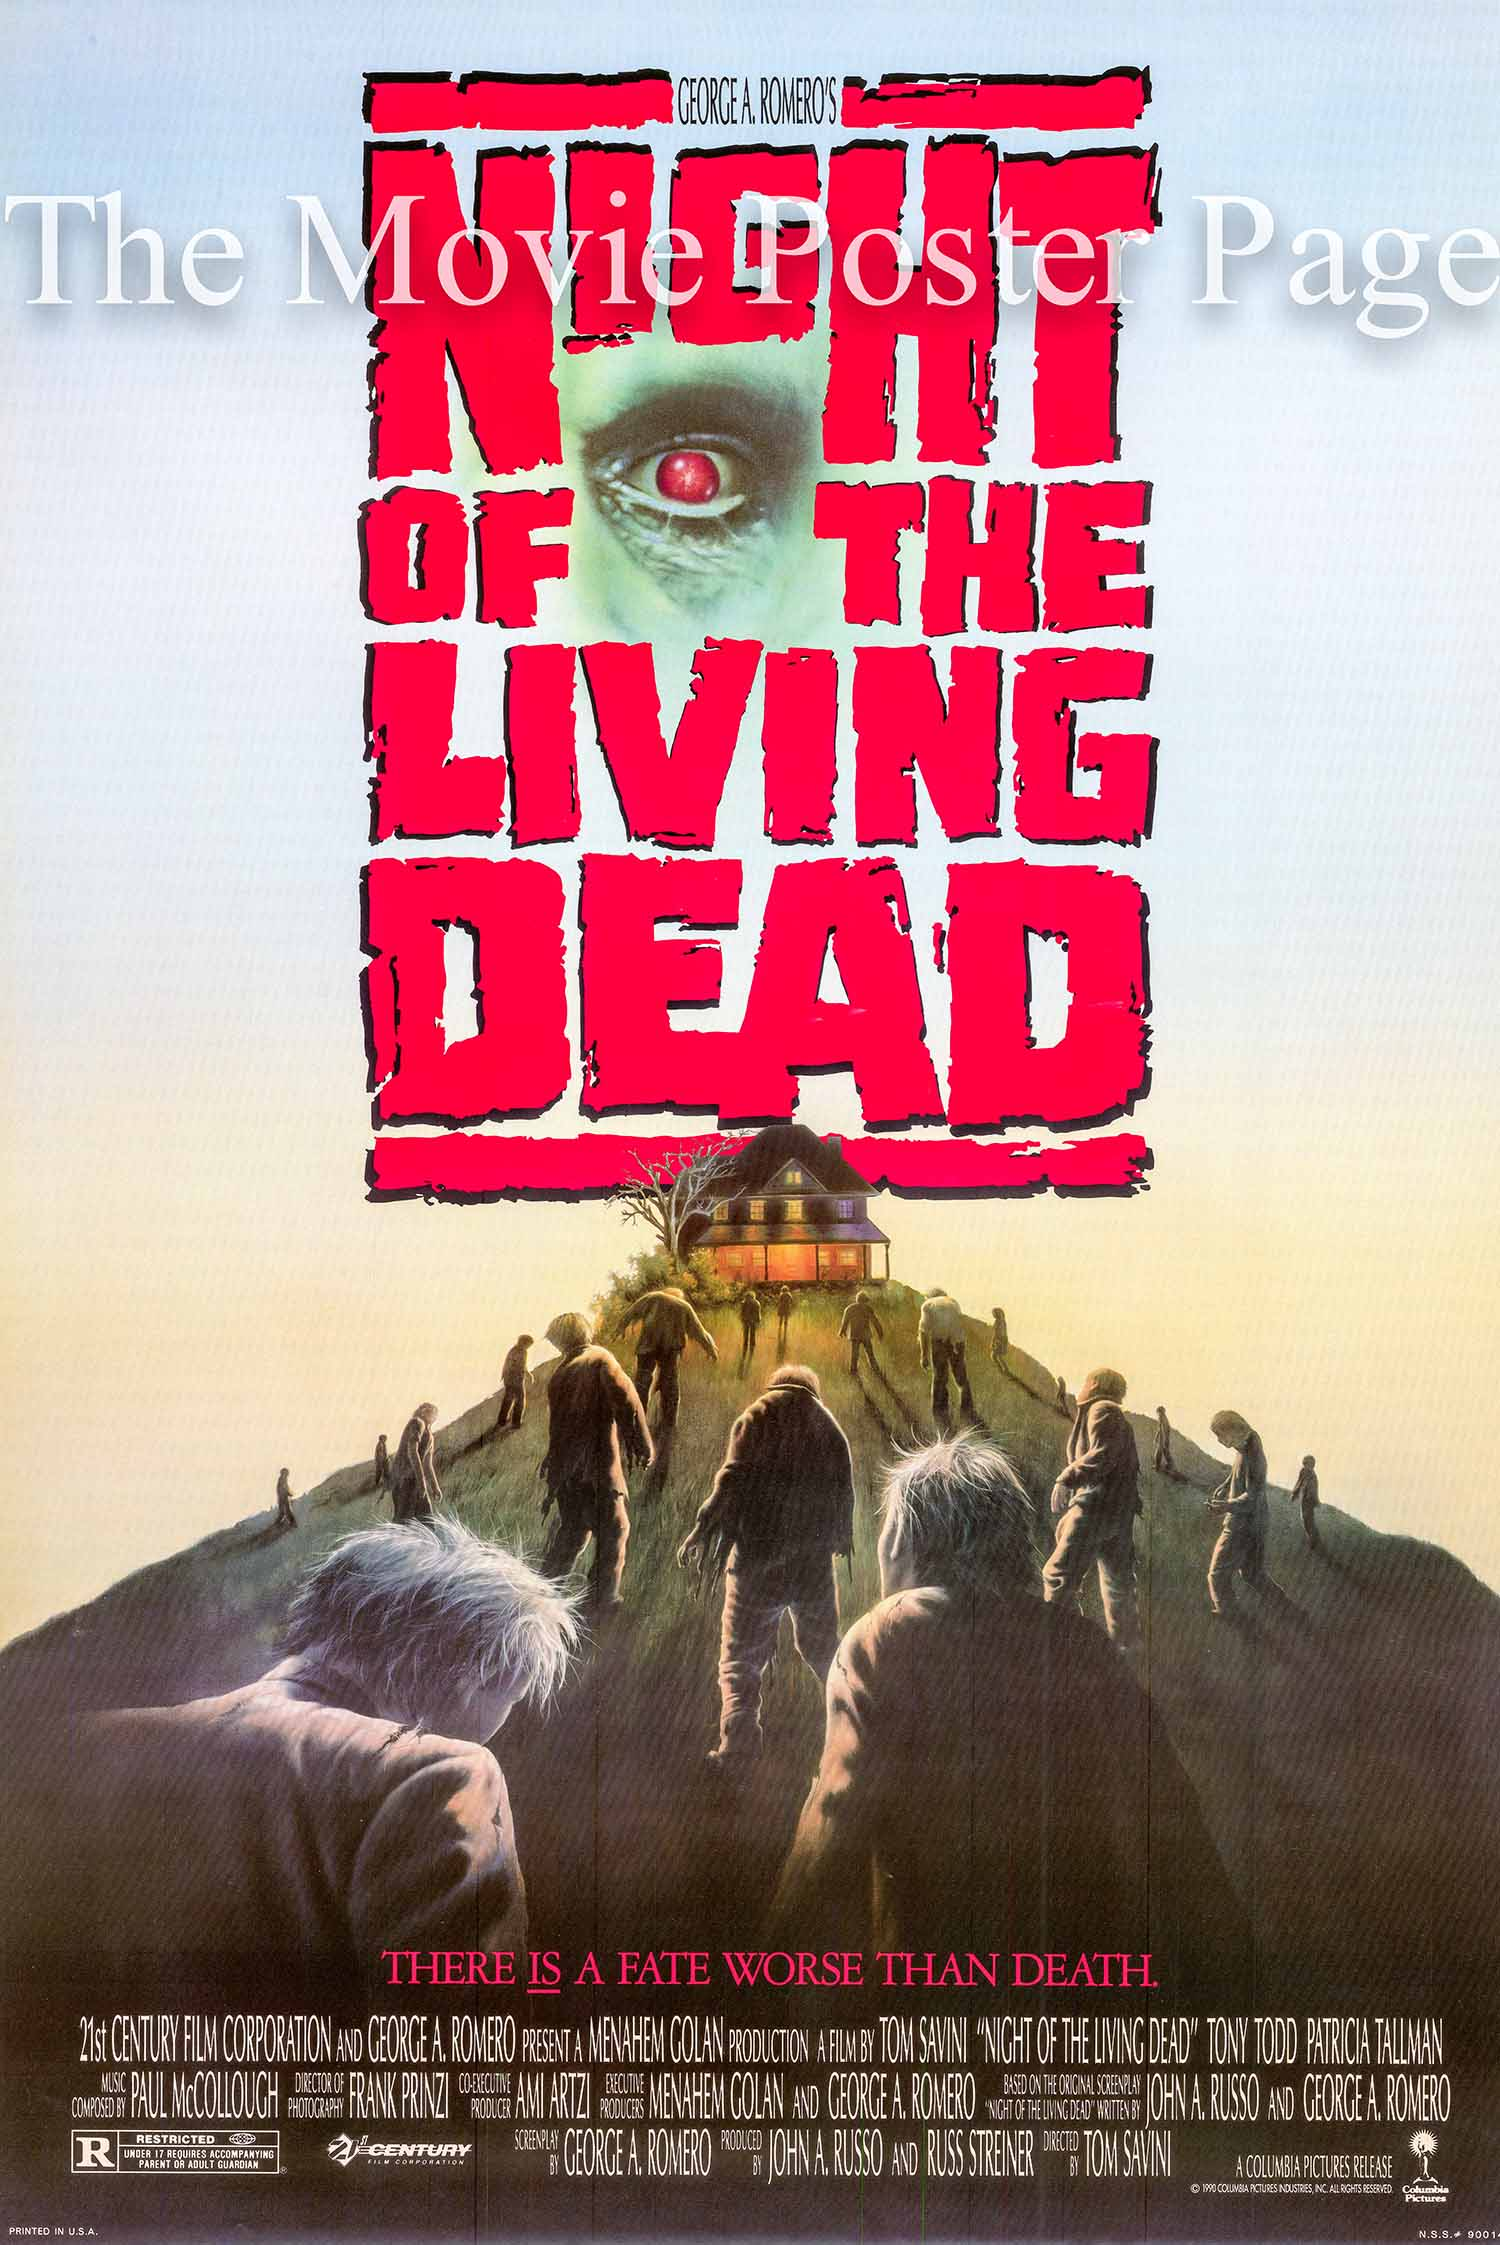 Pictured is a US promotional poster for the 1990 Tom Savini film The Night of the Living Dead based on a screenplay by George Romera and starring Tony Todd.